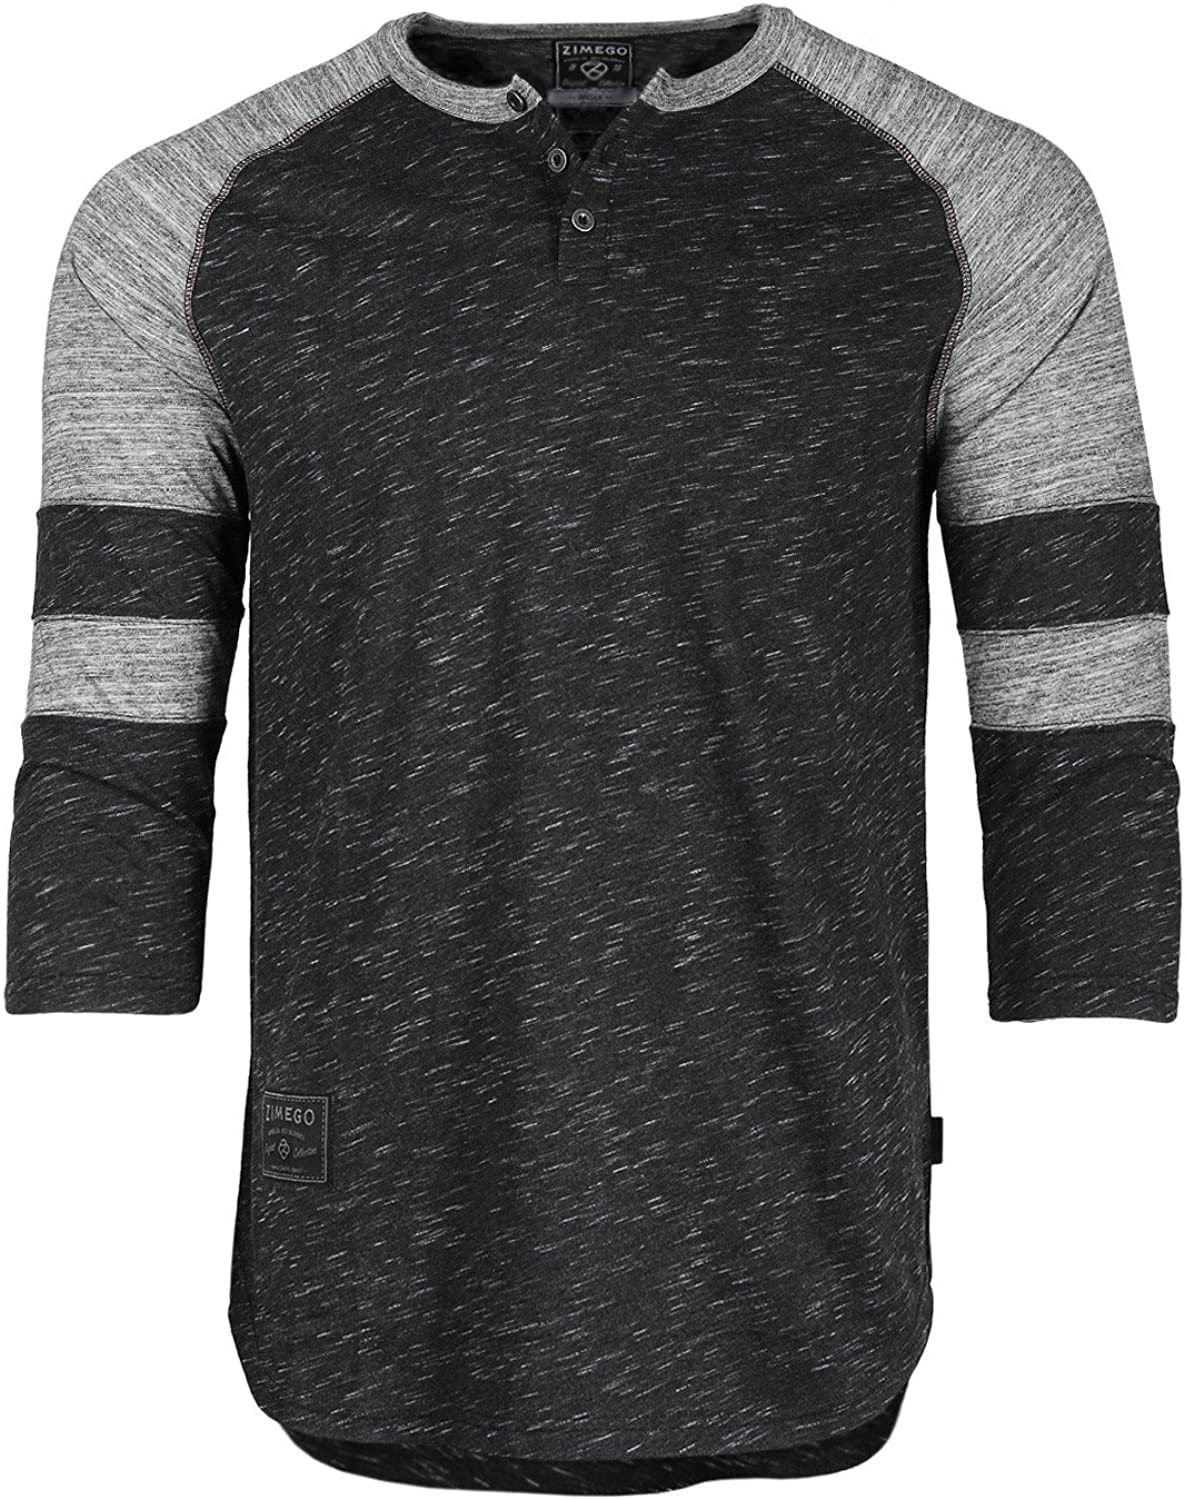 ZIMEGO Men's 3 4 Sleeve College Football online shopping mart Butto Athletic Baseball